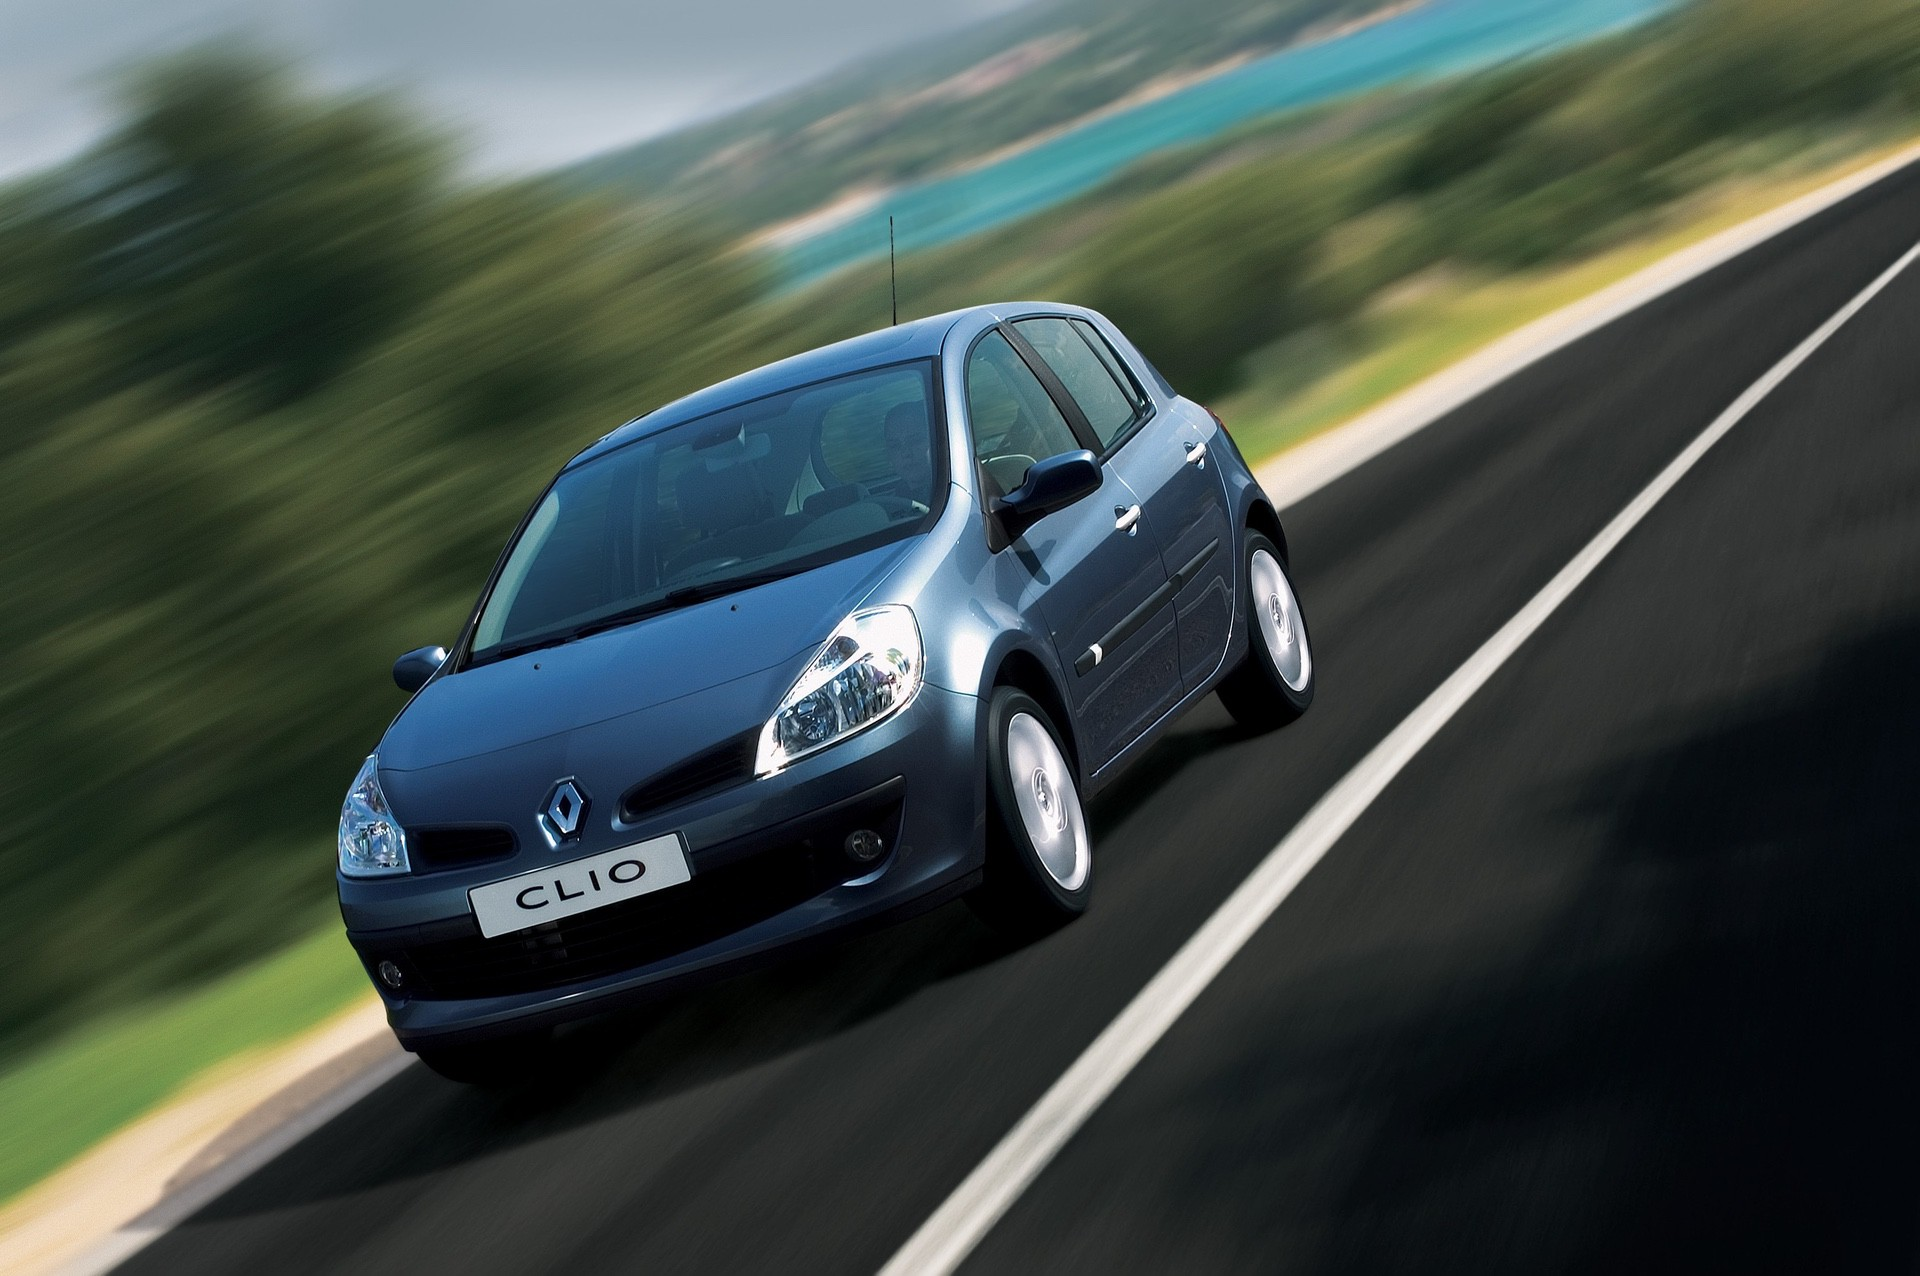 2020-30-years-of-Renault-CLIO-Renault-CLIO-III-2005-2012